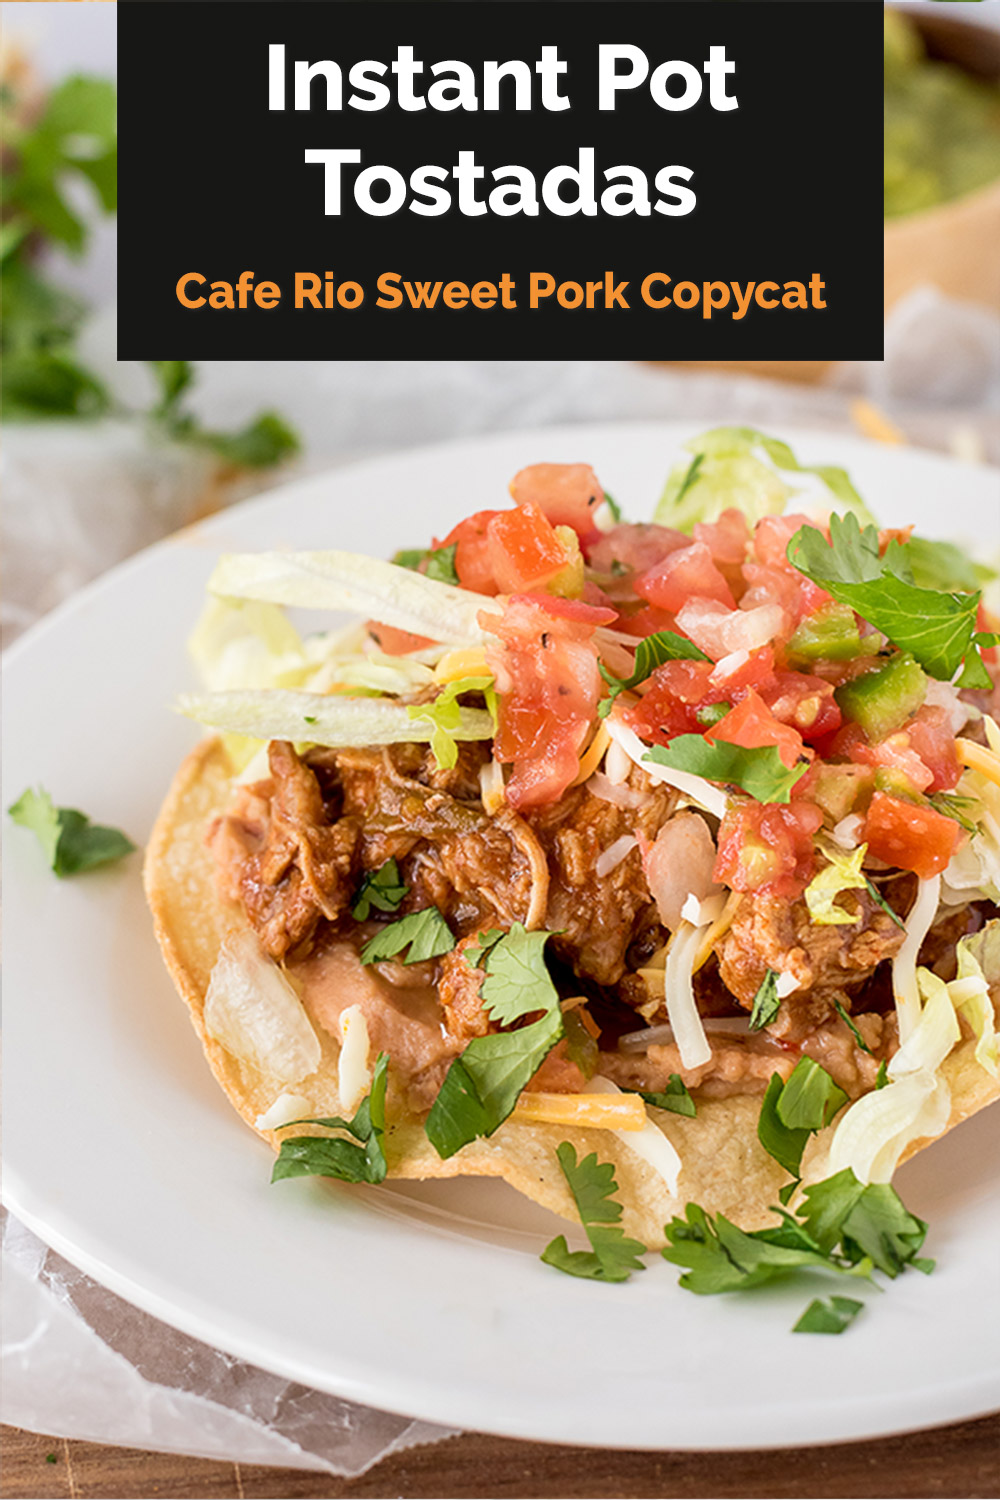 You can use this copycat Café Rio sweet pork recipe to make amazing tostadas, burritos, or salads in your Instant Pot. #pressurecookingtoday via @PressureCook2da